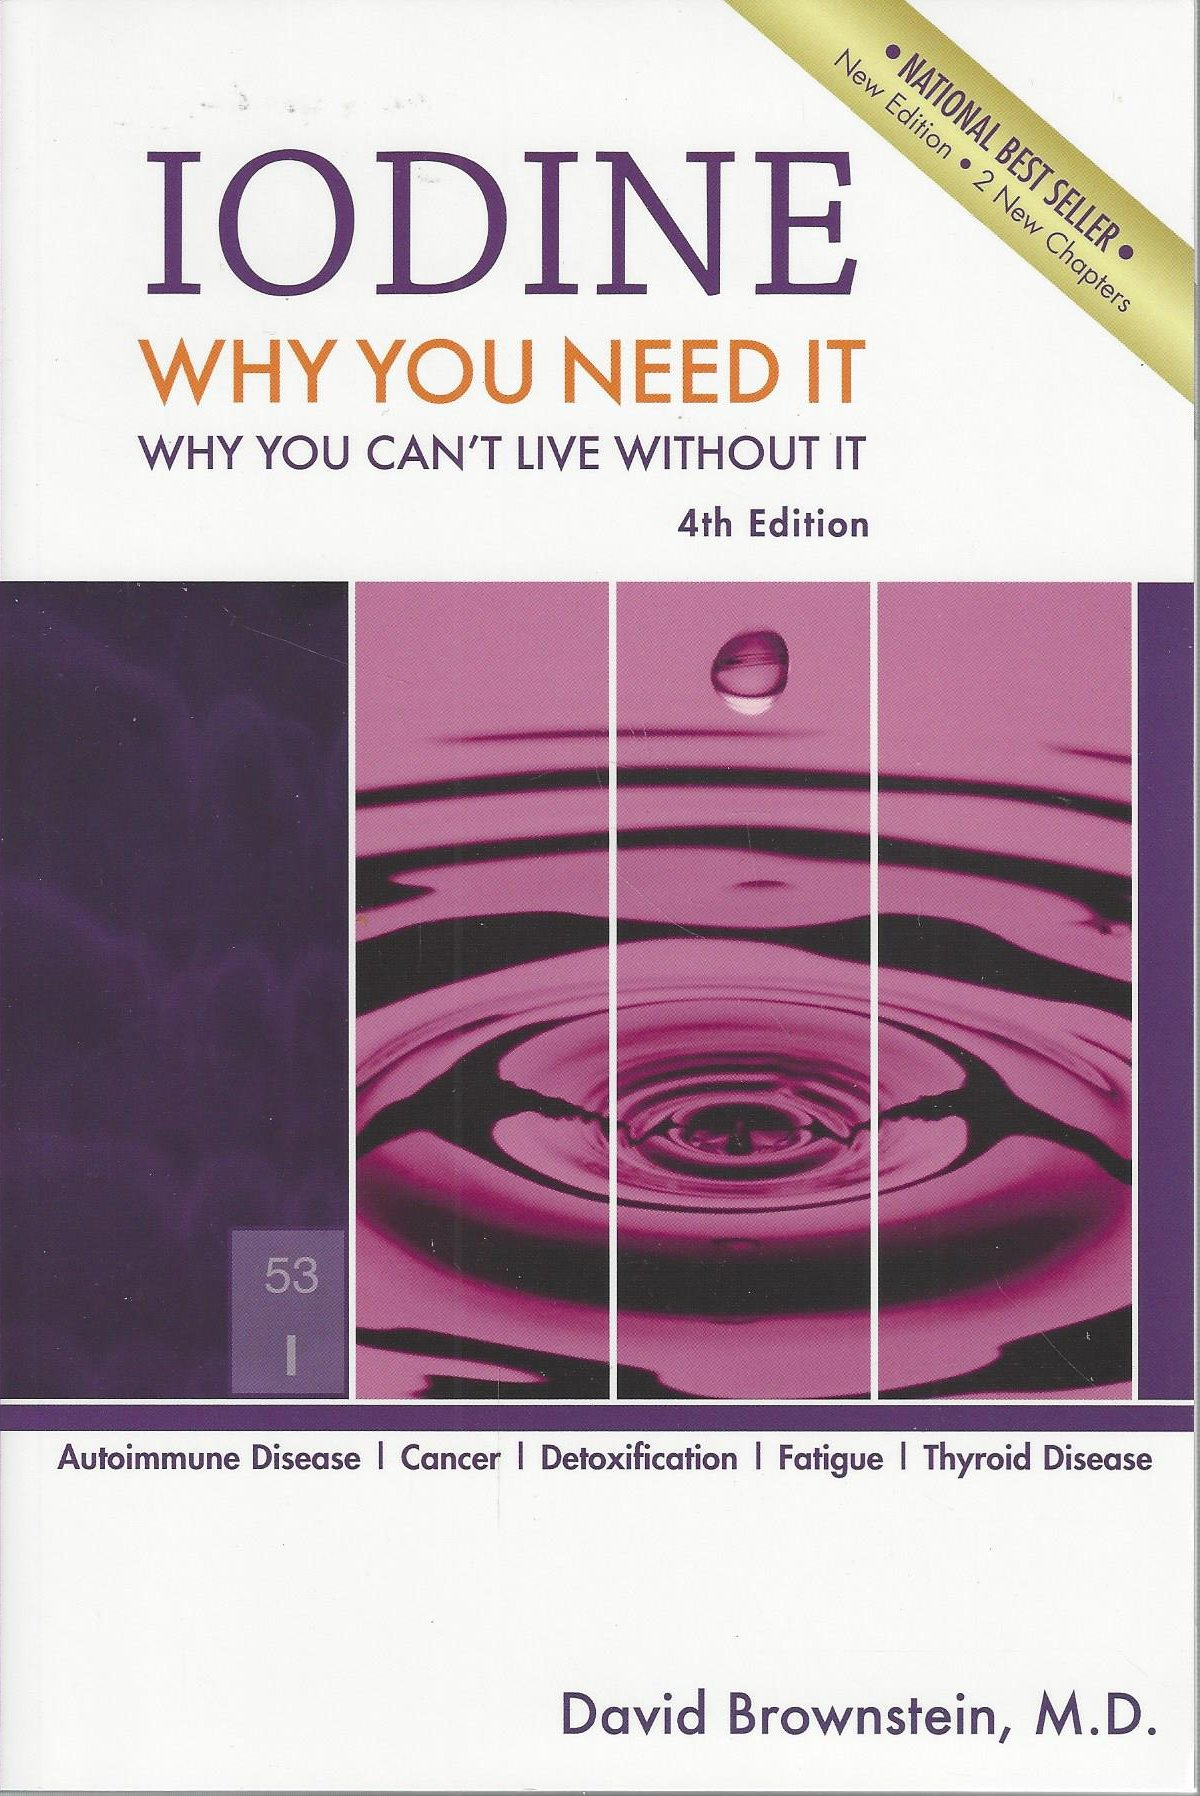 """iodine: why you need it, why you can't live without it - By David BrownsteinWell written and interesting, this book explains how iodine plays a crucial role in many aspects of health and why iodized salt does not supply our needs. Due to deterioration of soils/foods as well as poorer modern diets and environments (particularly the deliberate pollution of drinking water with fluorine, fluoride and chlorine, which are all toxic), severe iodine deficiency is epidemic in many English-speaking countries.It's not just good for thyroid problems: some acclaim iodine for helping to heal breast cancer and cysts; for skin problems like acne, eczema, moles and skin tags; for fatigue symptoms; for fungus infections; for detoxification; and much more. It seems to have an amazingly wide application, since it can kill all single celled organisms and is the most effective known antiseptic. The author of this book, Dr Brownstein, confirms """"Iodine has many positive therapeutic actions. It is a potent anti-infective agent. No virus, bacteria or parasite has been shown to be resistant to iodine therapy."""" He also repeatedly hails its proven anti-cancer effects."""